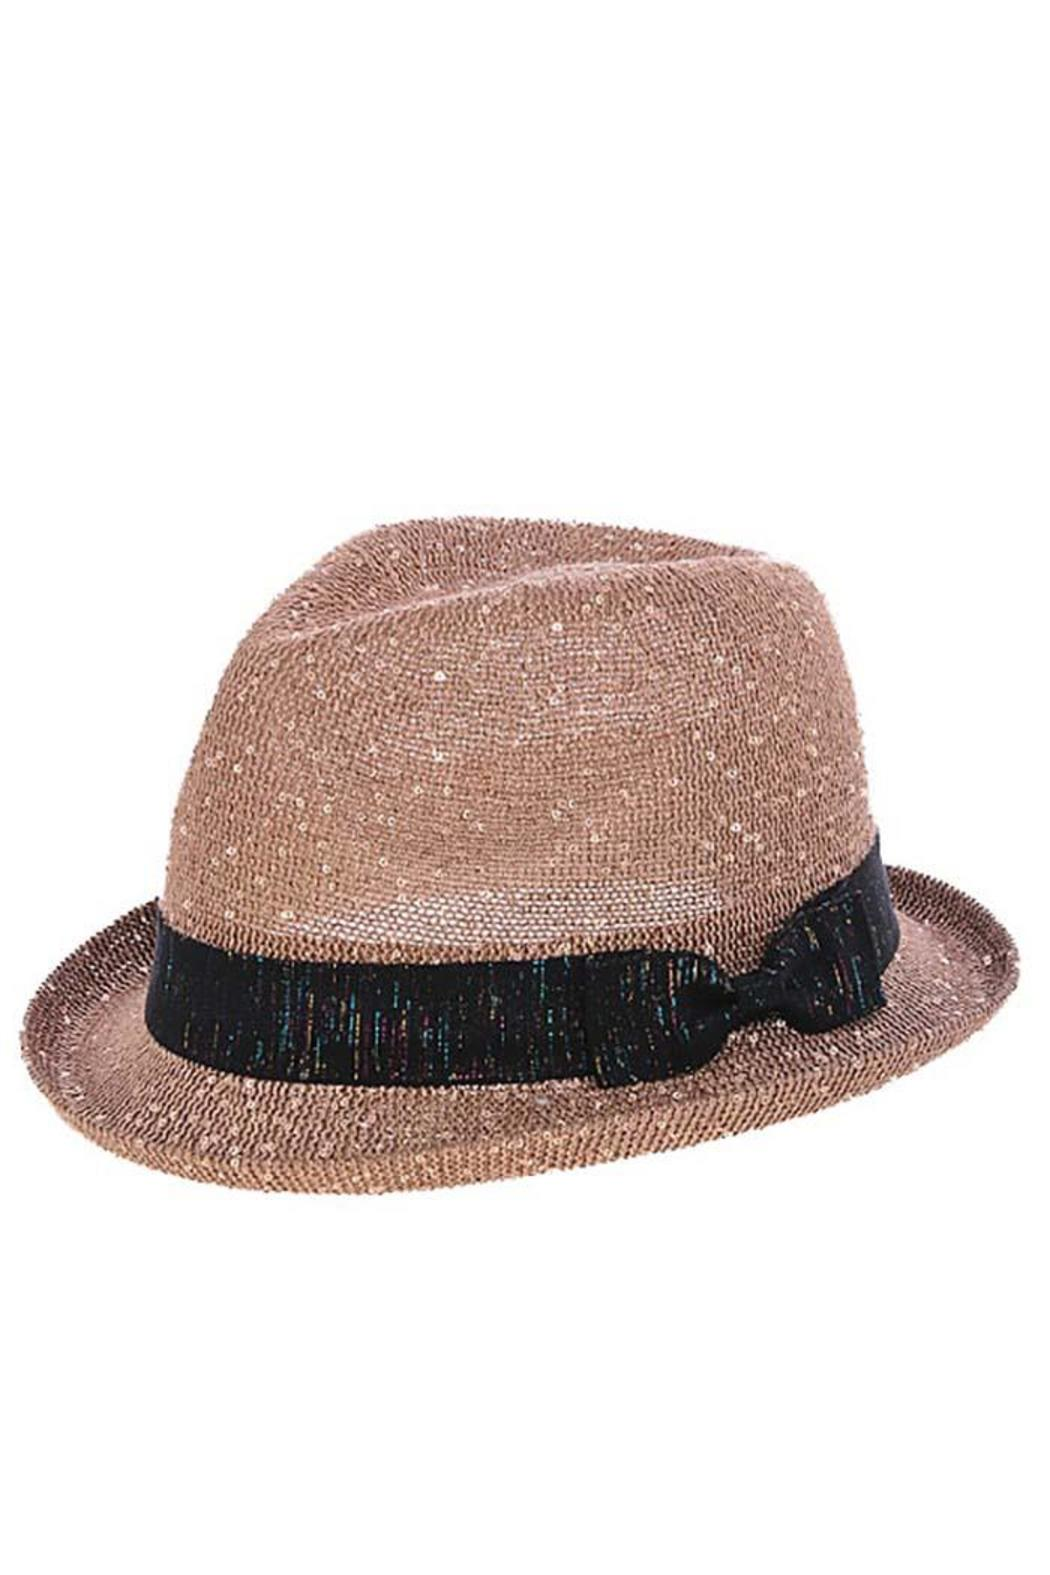 The Hatter Company Sparkly Woven Fedora from California by Nadya s ... 53b1459385a